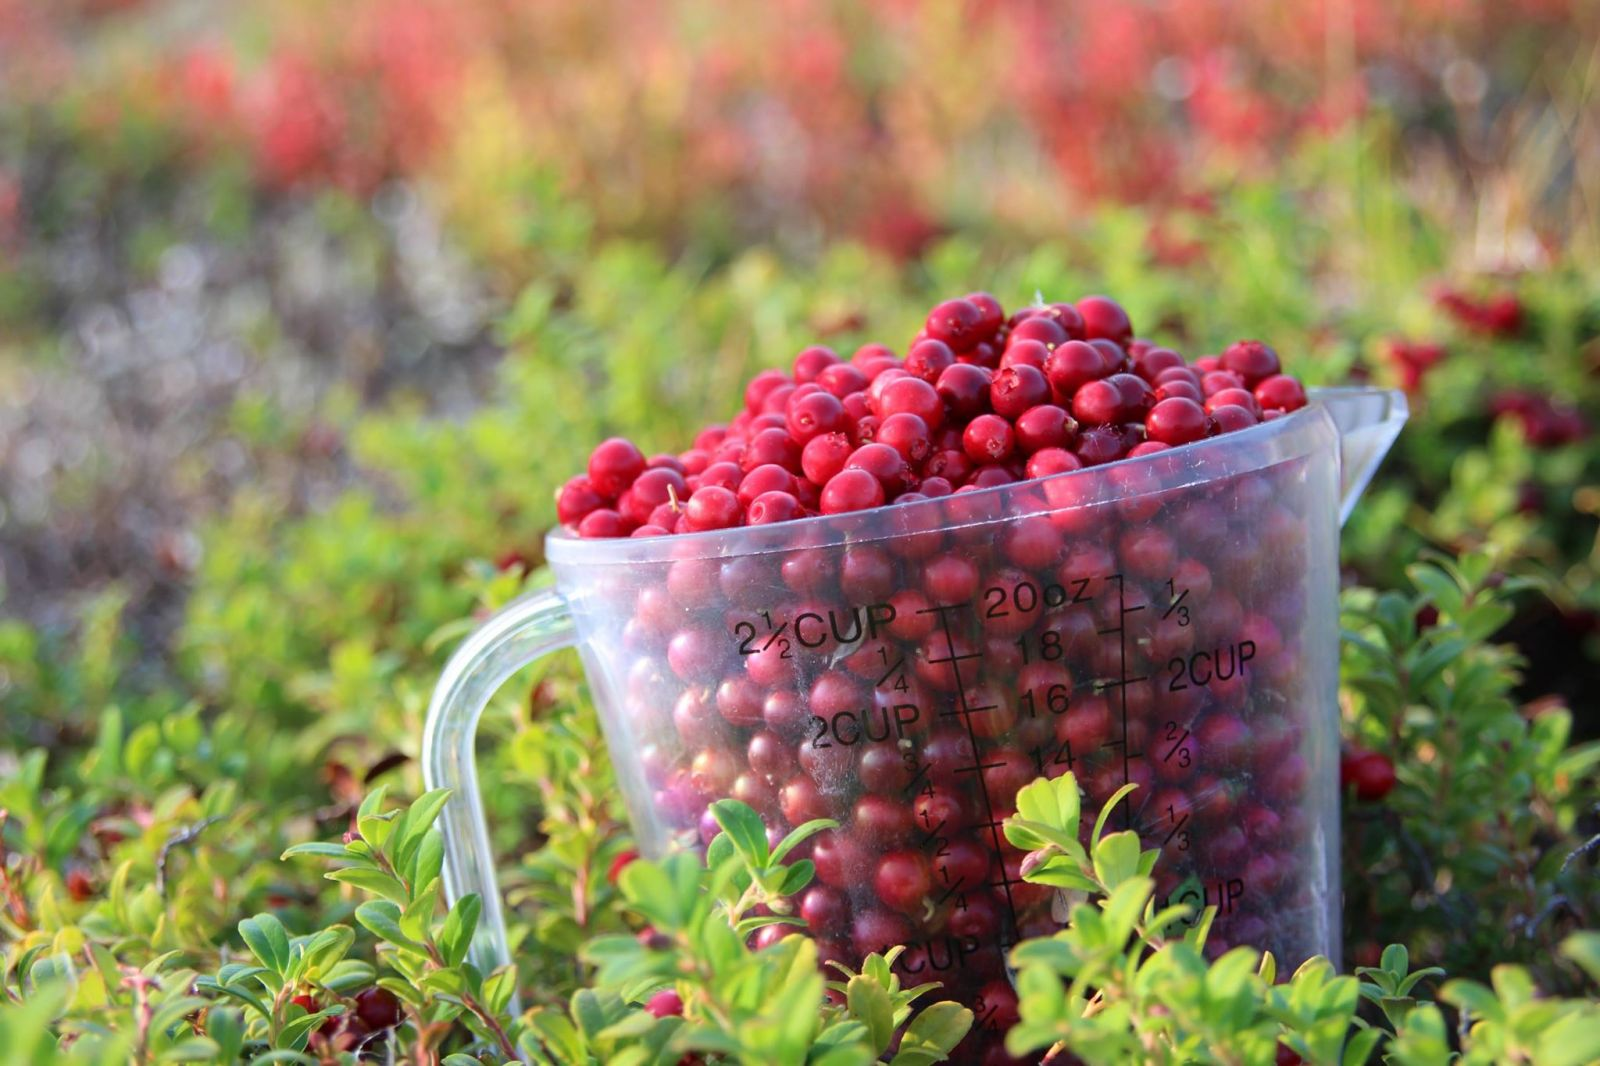 Berry picking in Scandinavia